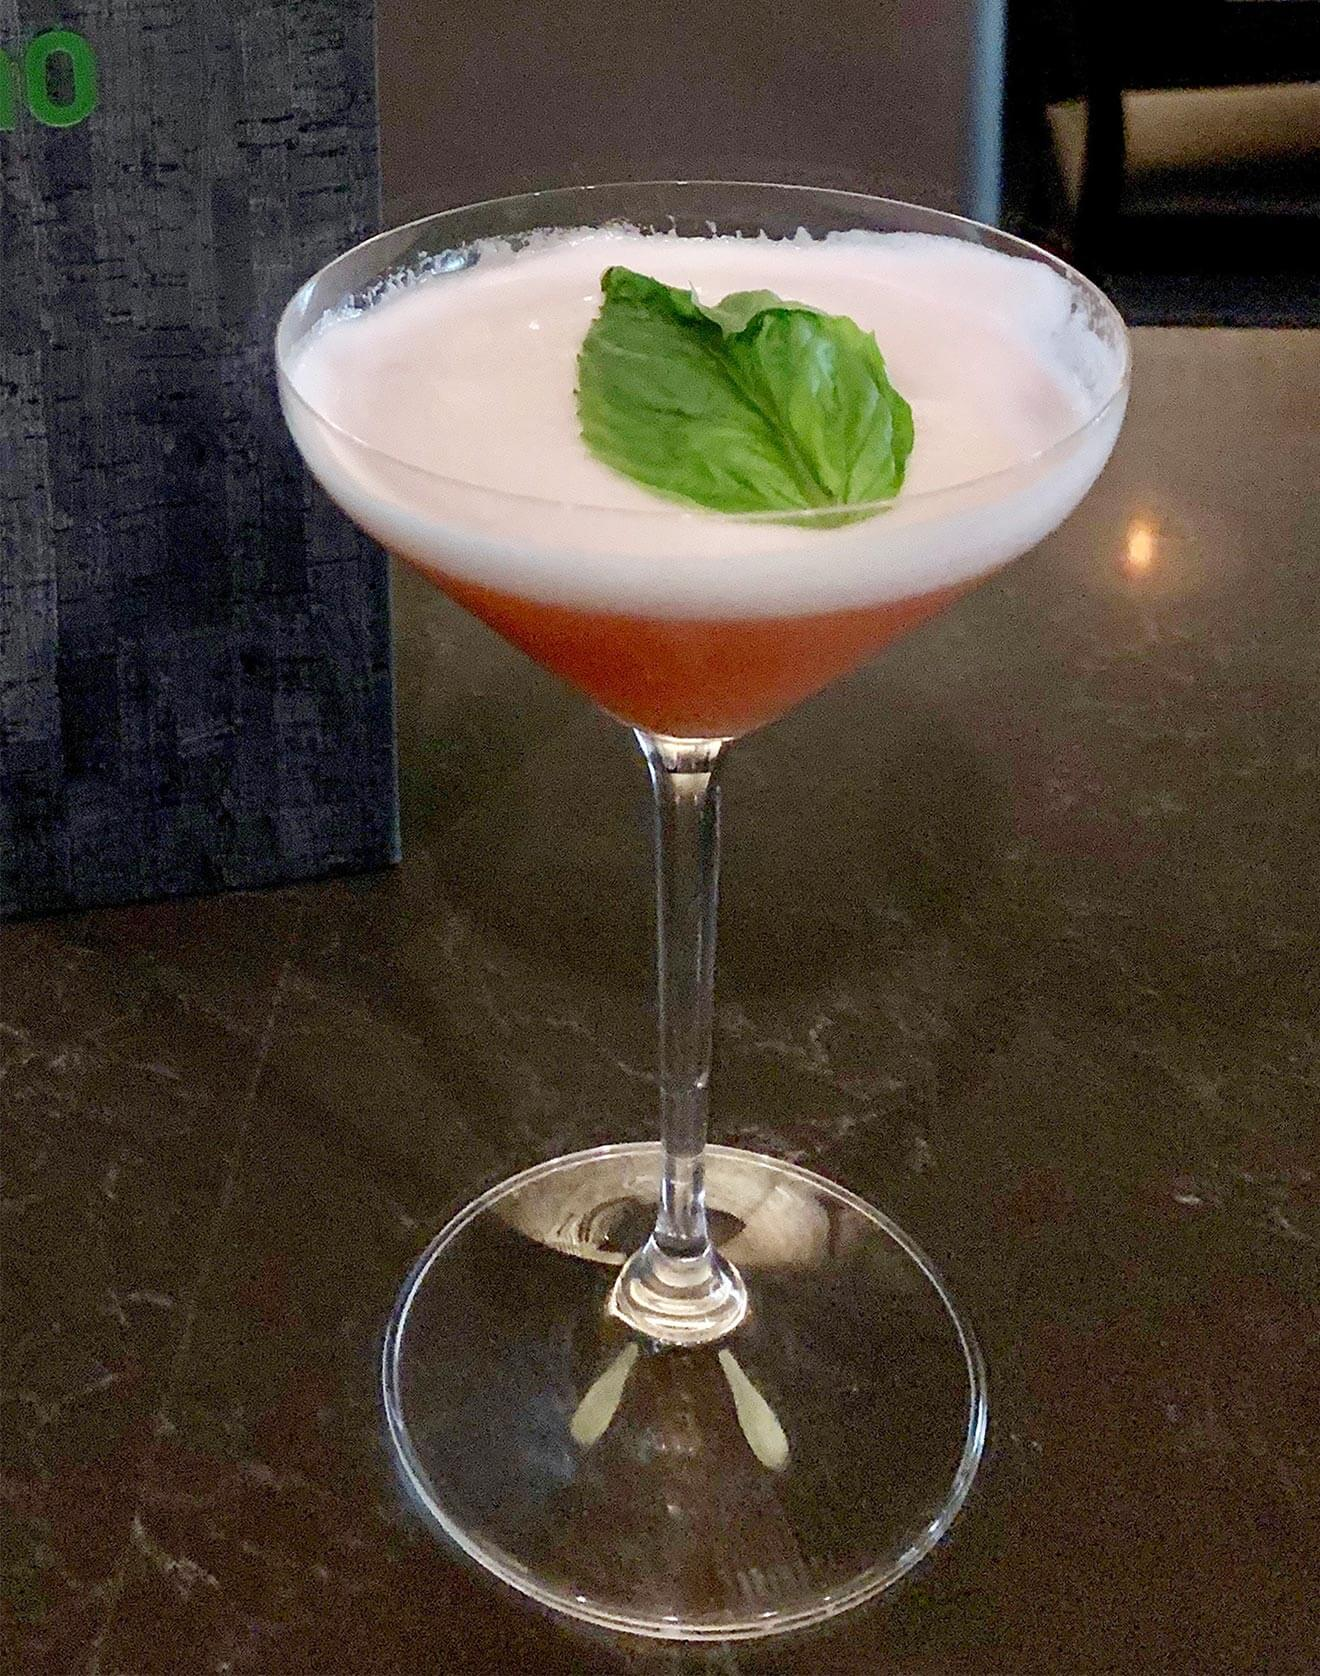 NUE Sip of Liberty cocktail with leaf garnish